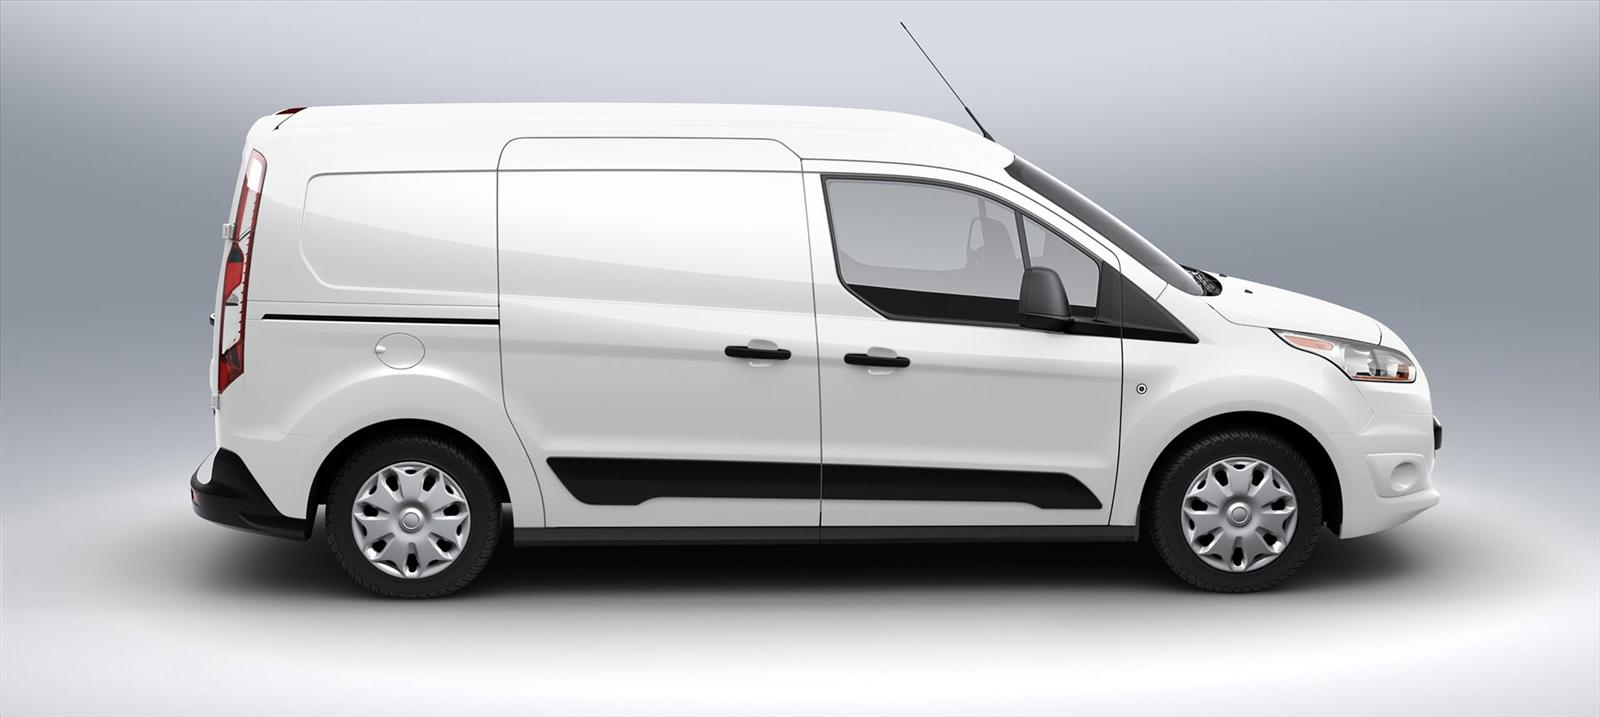 2015 ford transit connect images photo ford transit connect van 2015 019. Black Bedroom Furniture Sets. Home Design Ideas